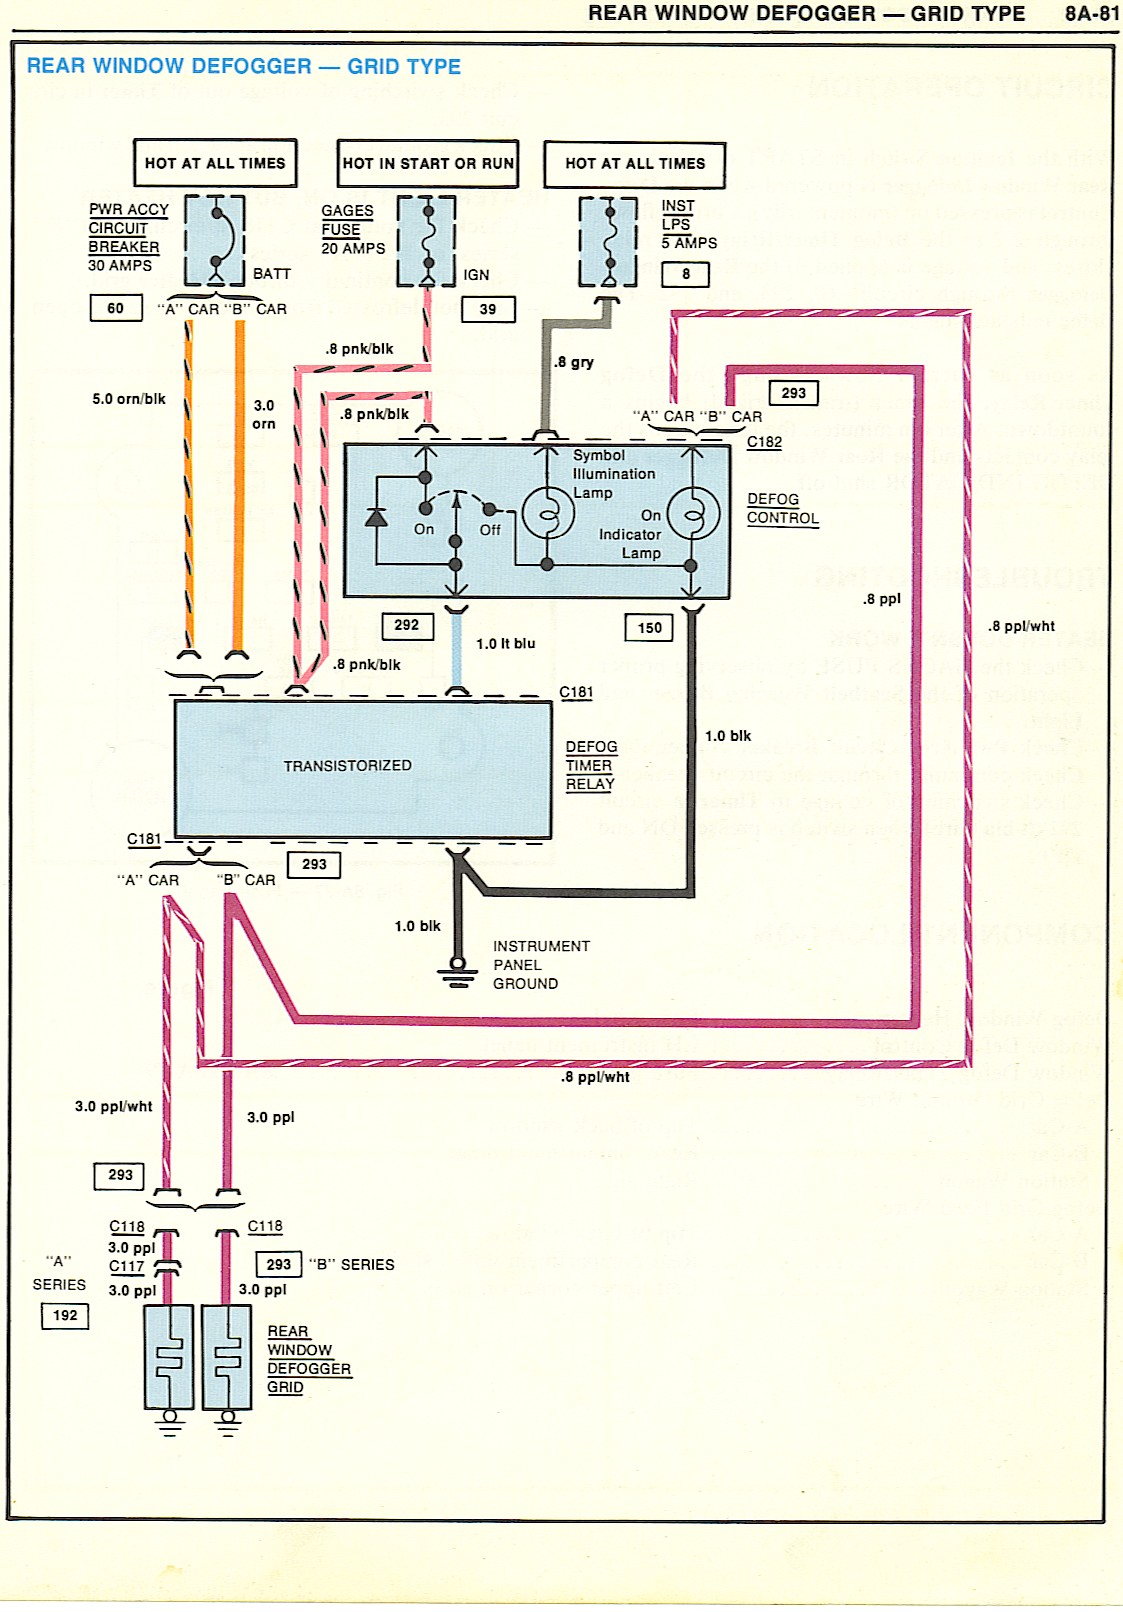 hight resolution of 1973 firebird rear defroster wiring diagram